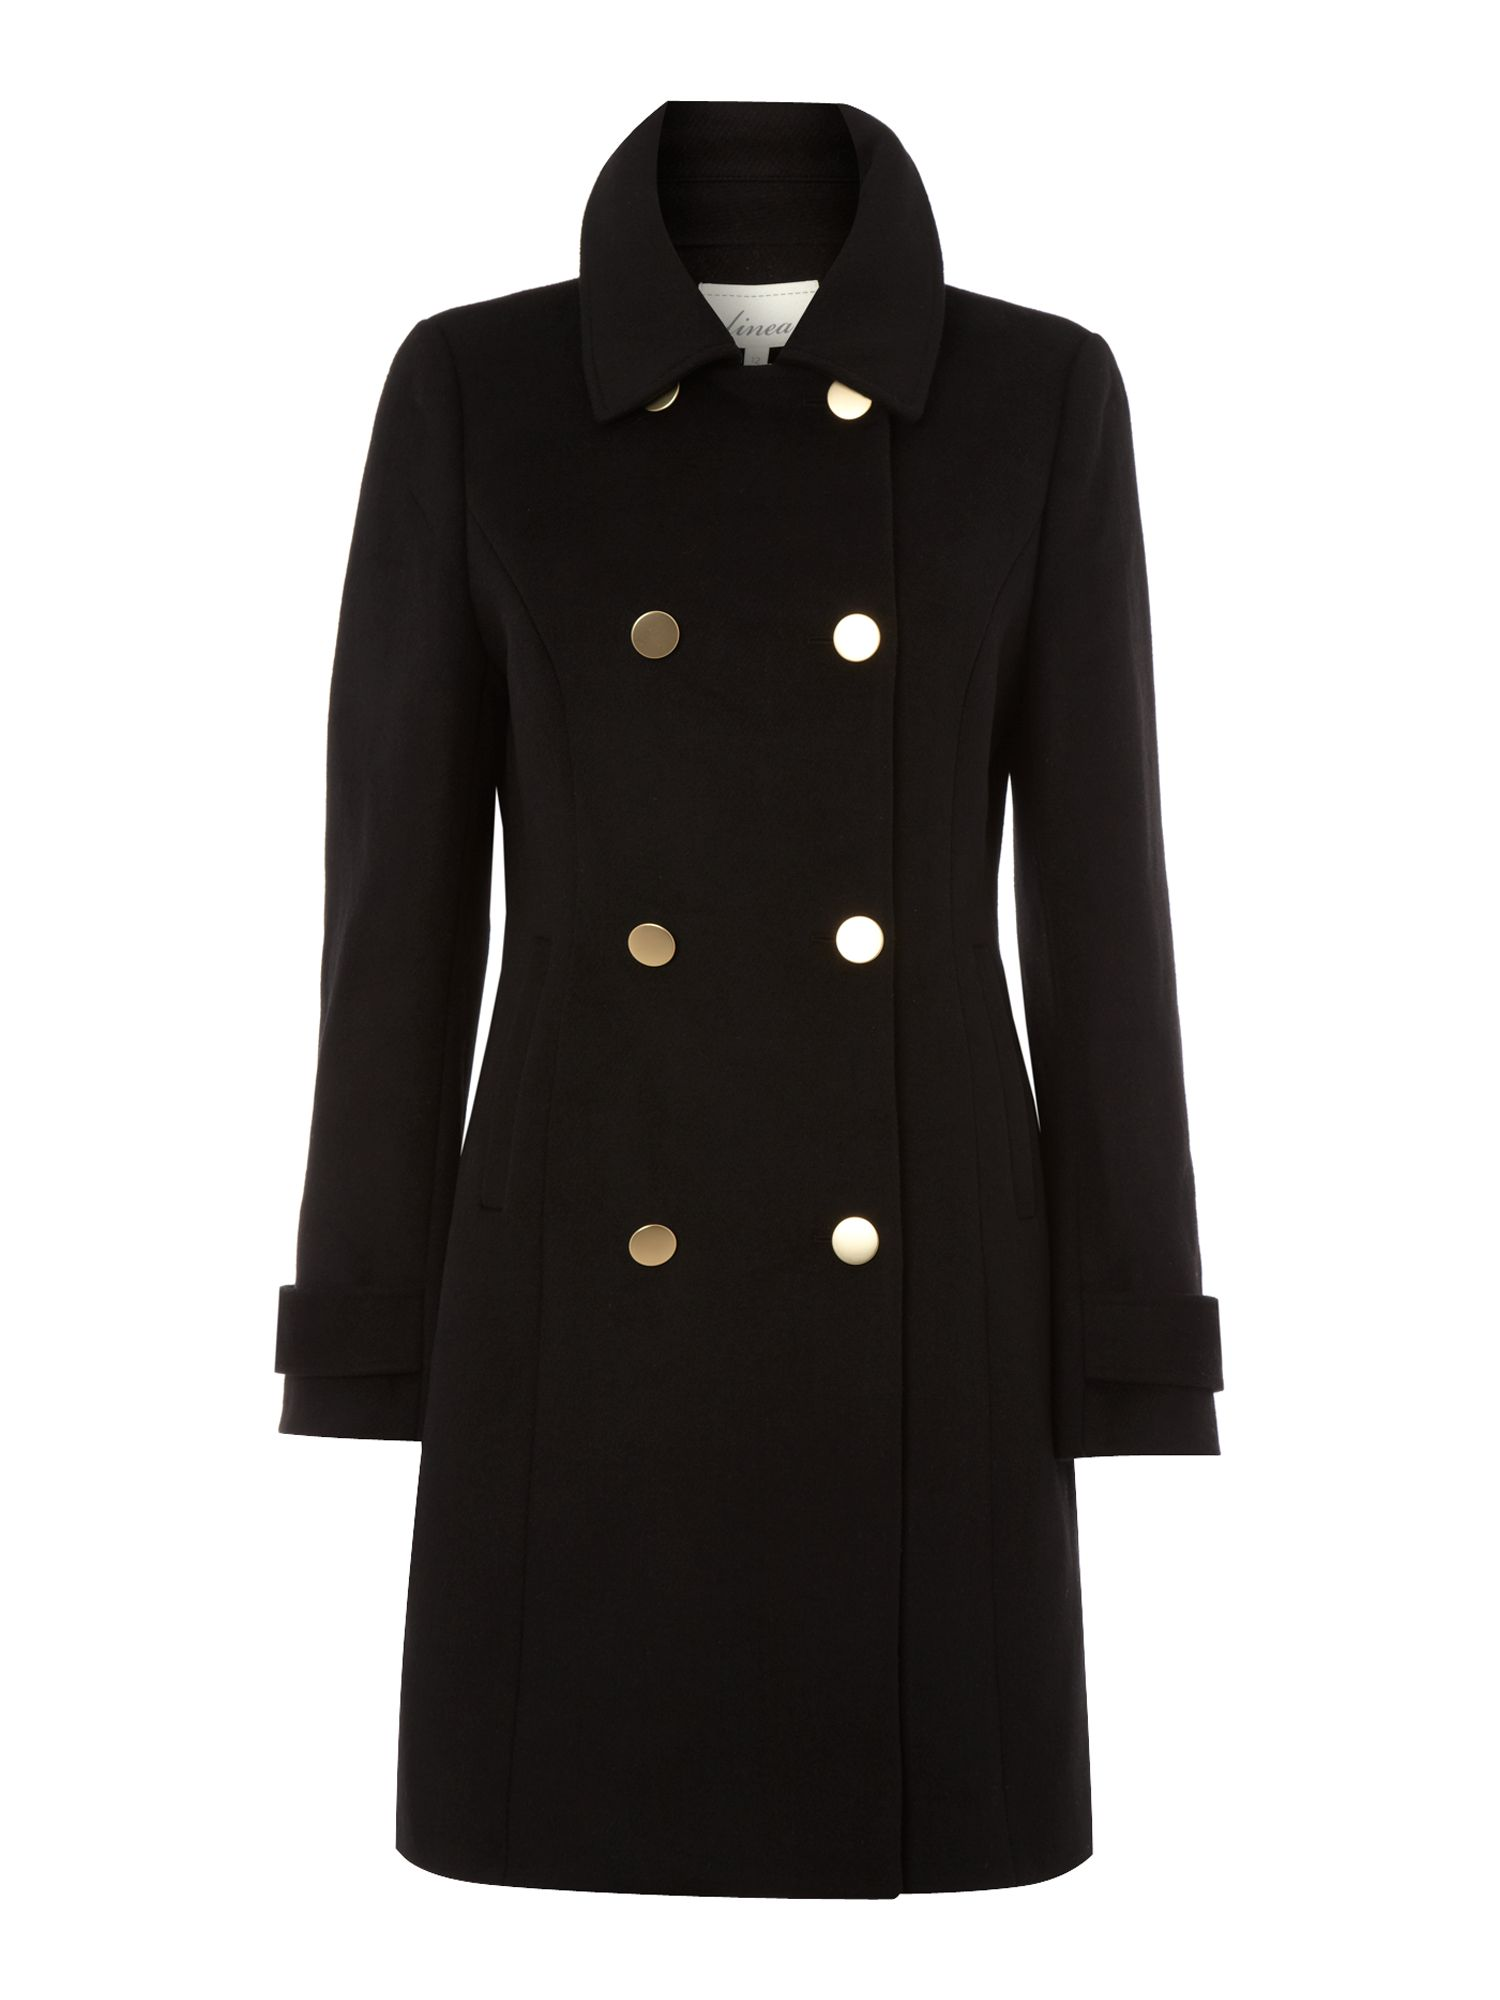 Wool blend double breasted military coat